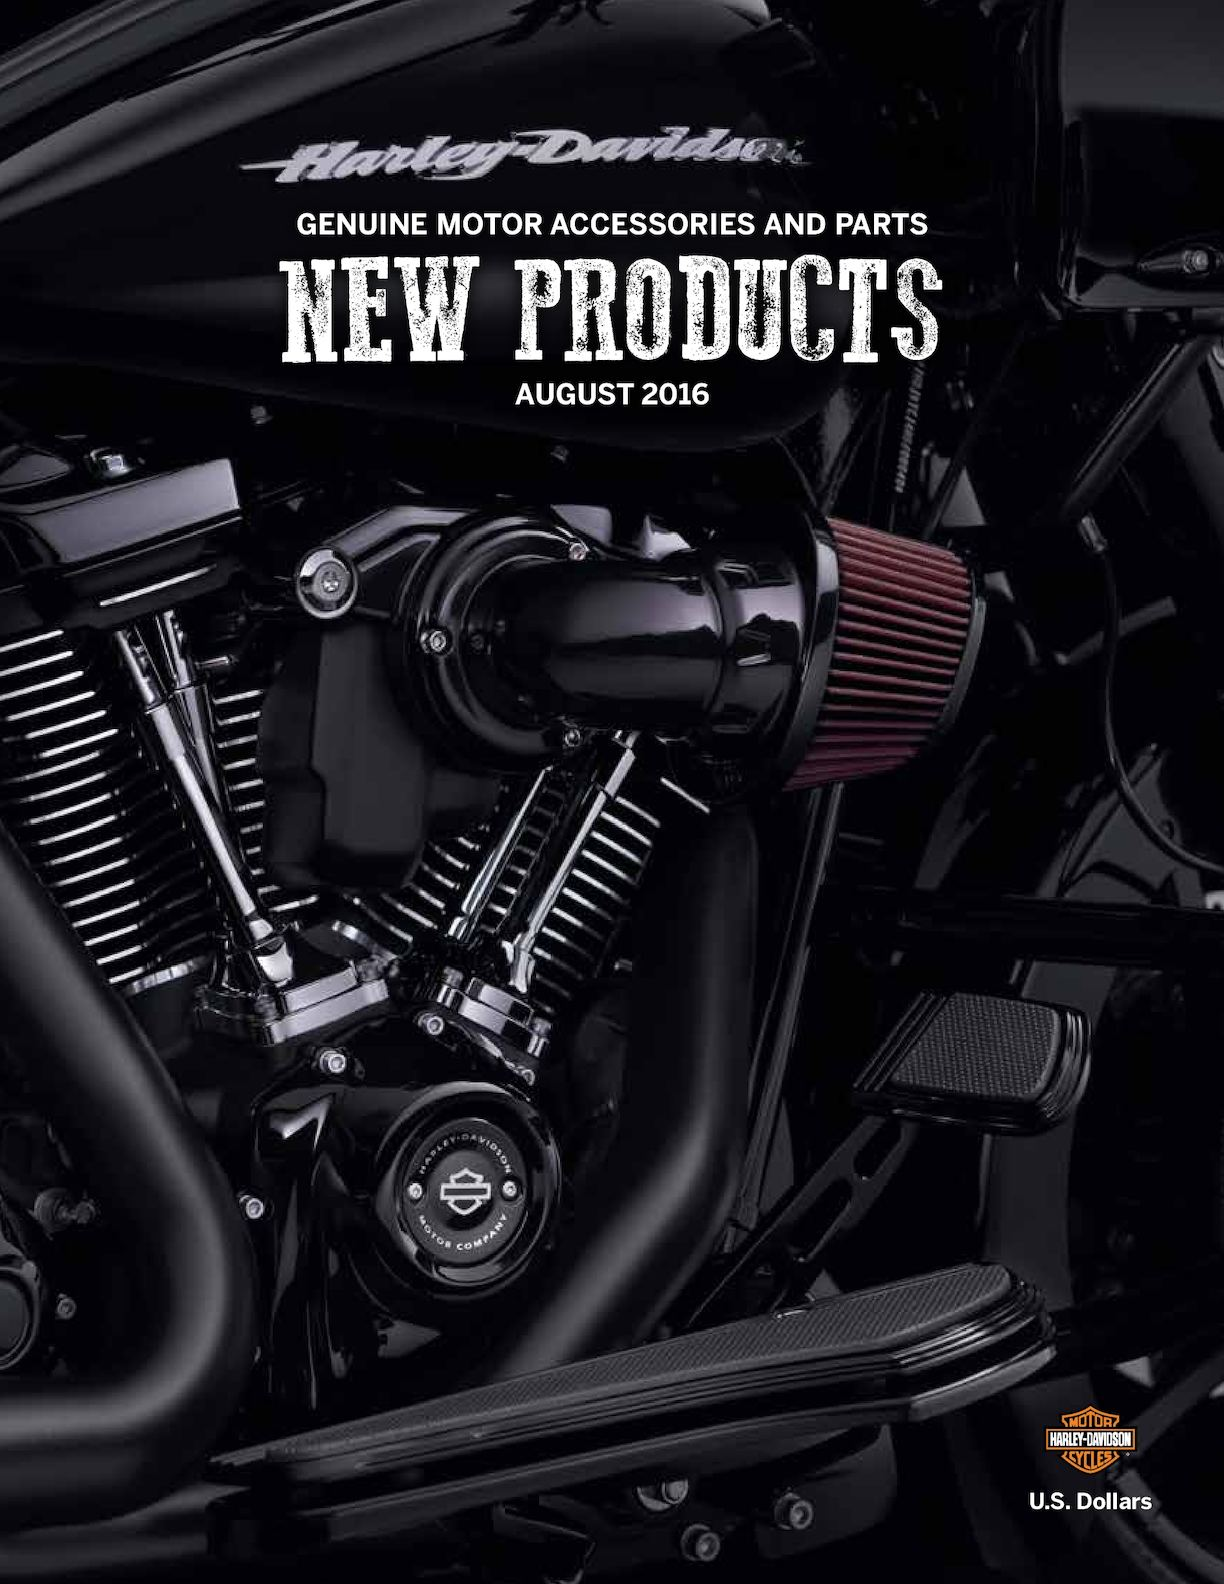 Frames & Fittings Black Electric 1 Burst Hand Grips For Harley Softail Slim Fat Boy Touring Flhx Street Electra Glide Factory Direct Selling Price